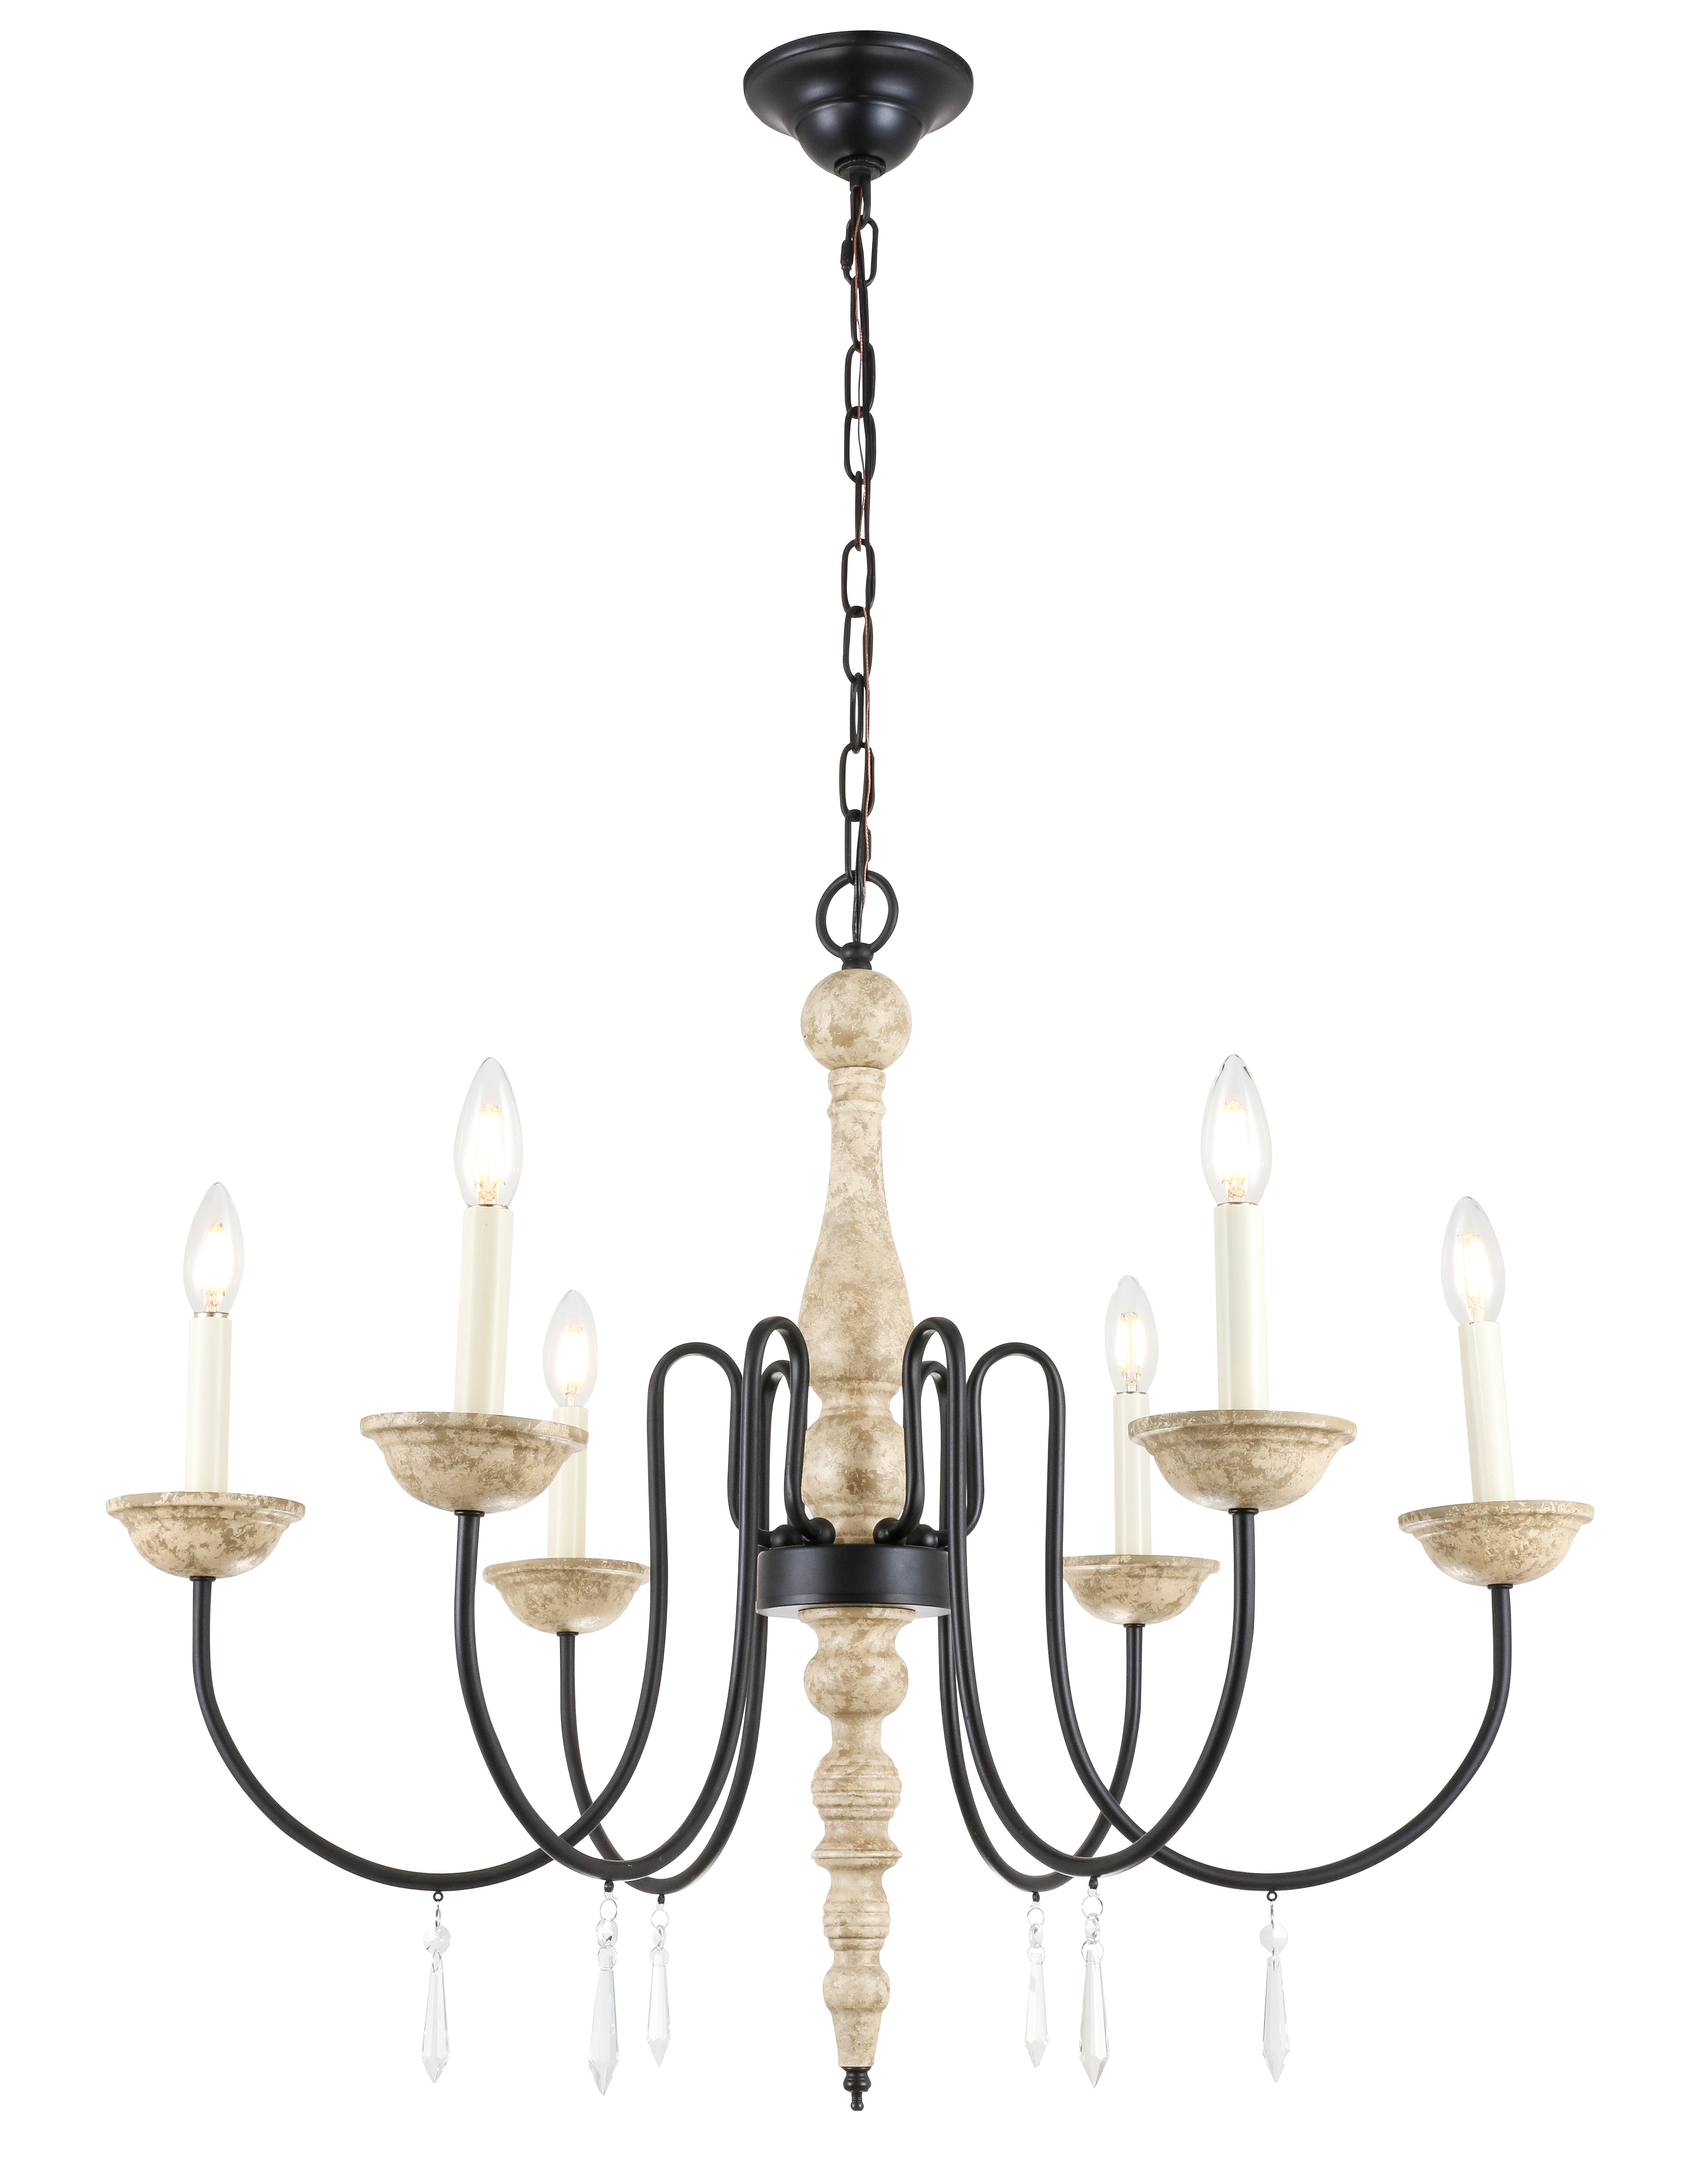 Goguen 6 Light Candle Style Chandelier In Shaylee 6 Light Candle Style Chandeliers (View 11 of 30)